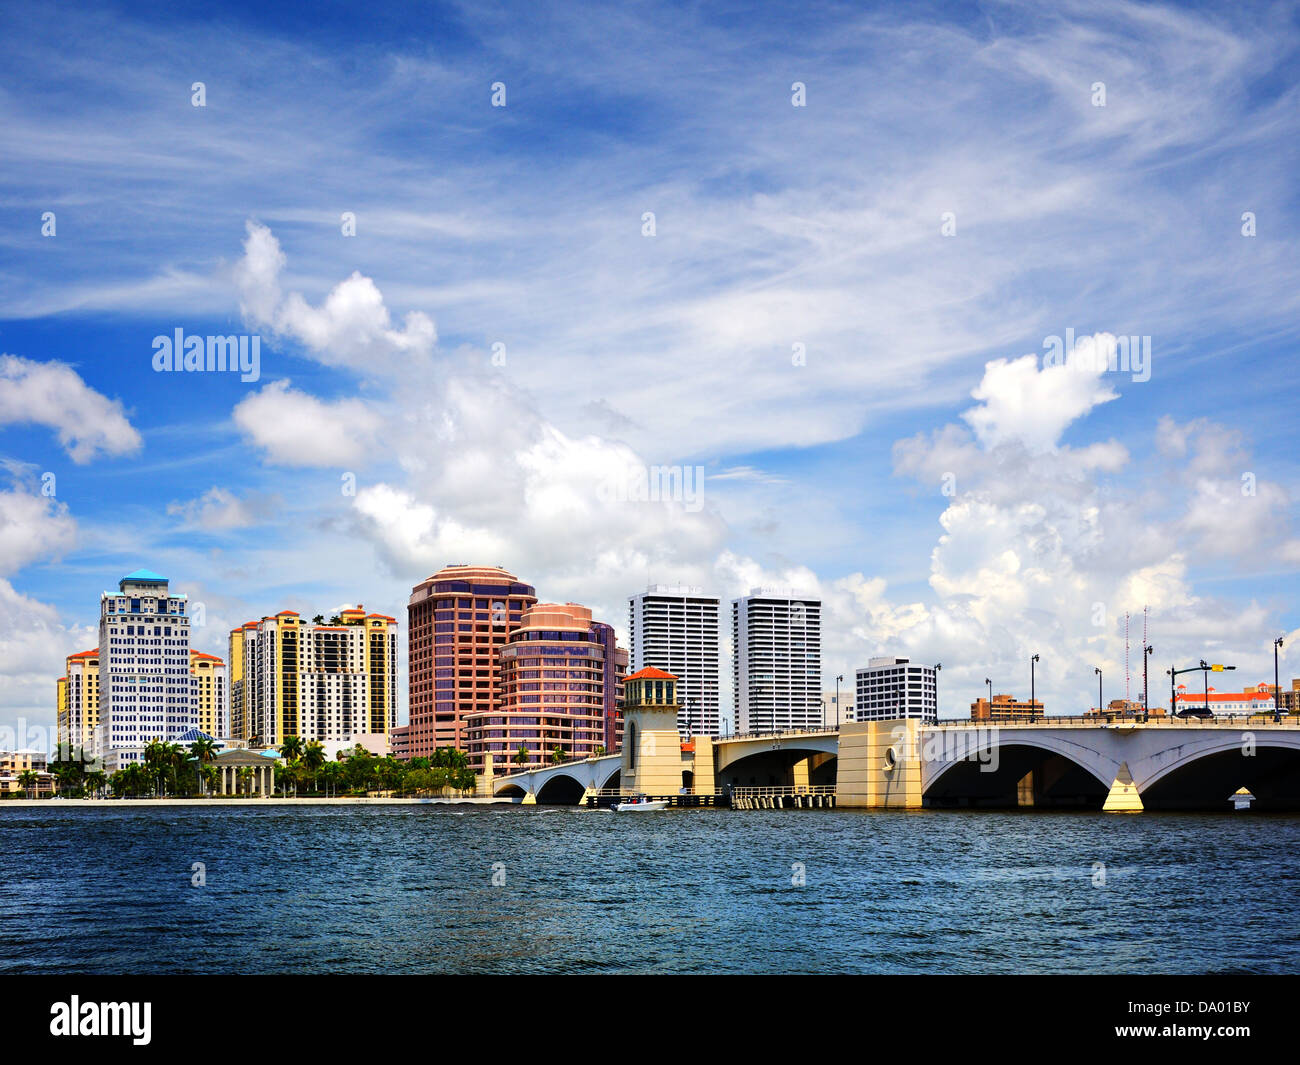 Downtown West Palm Beach, Florida skyline. - Stock Image